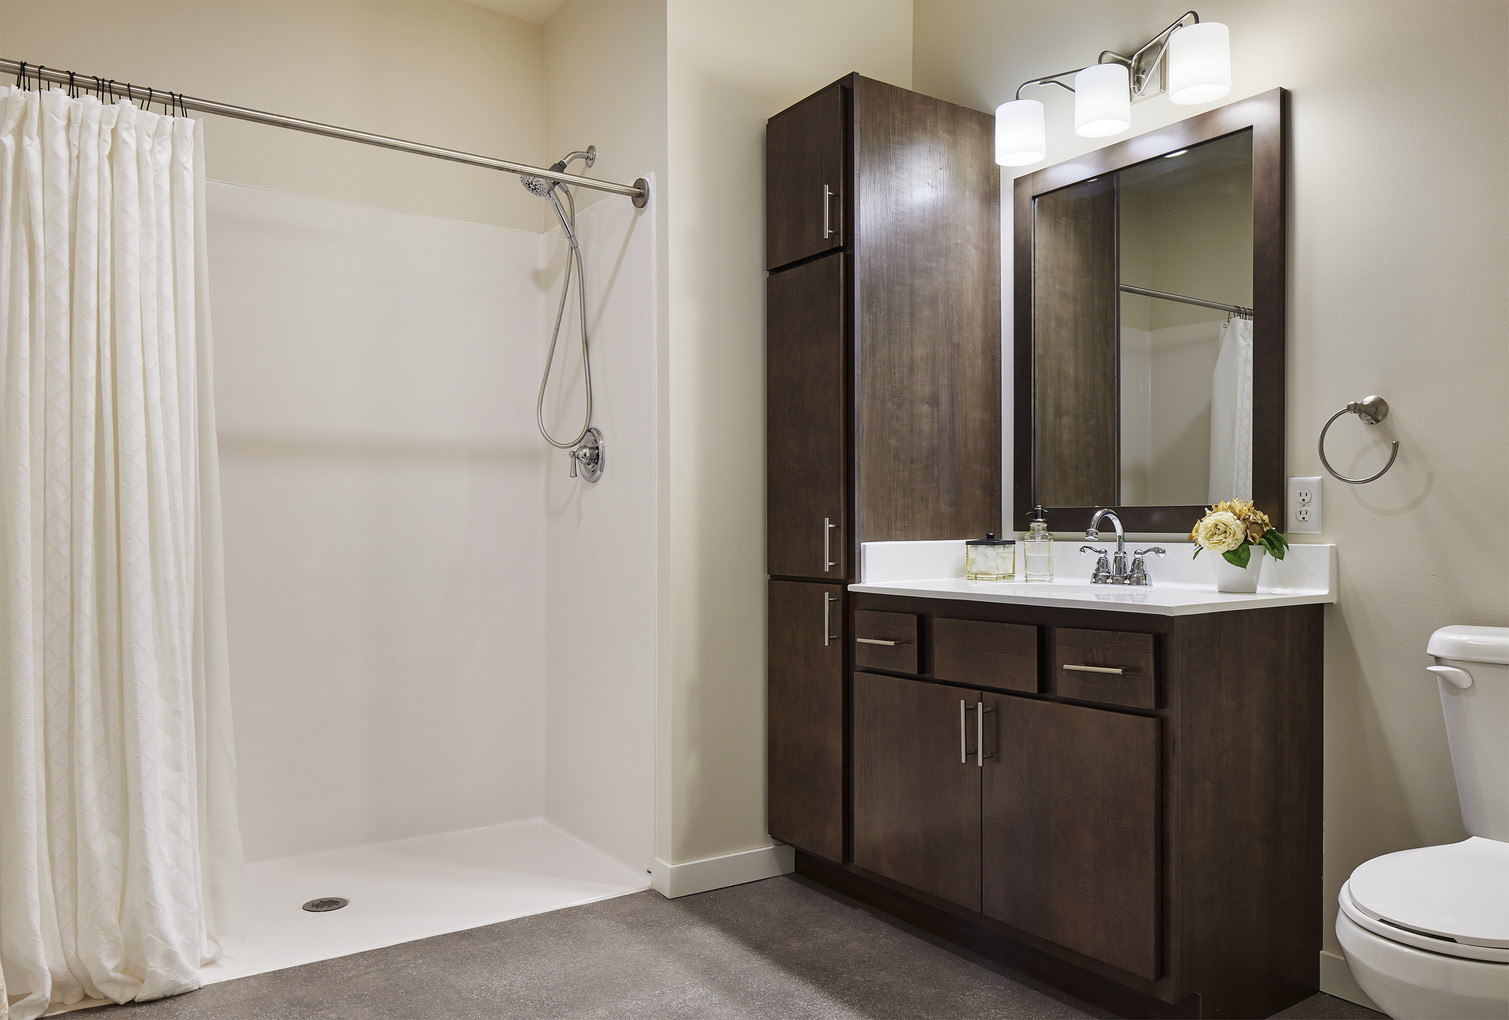 Bethesda Cornerstone Village - Bathroom